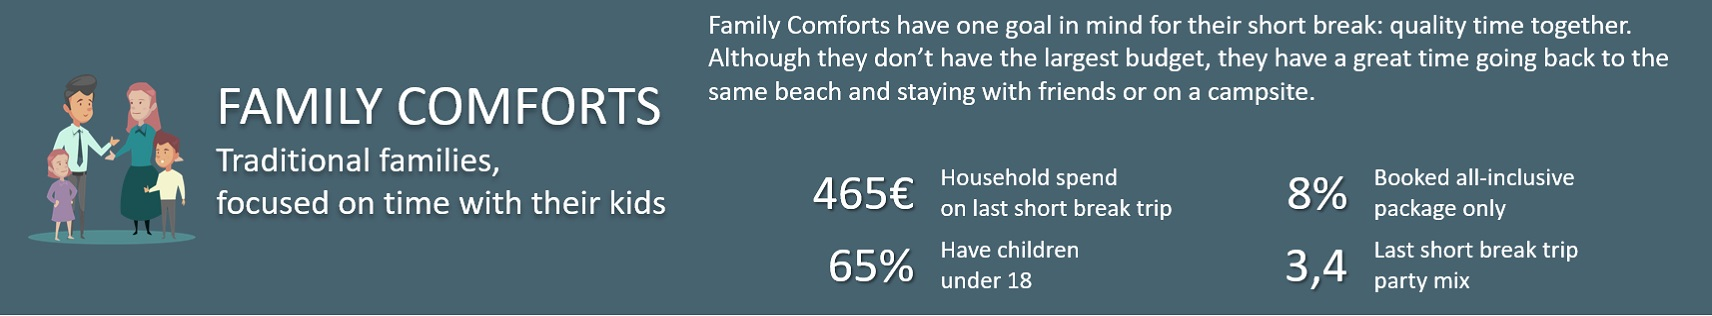 Consumer-journey-strategic-research-family-comforts